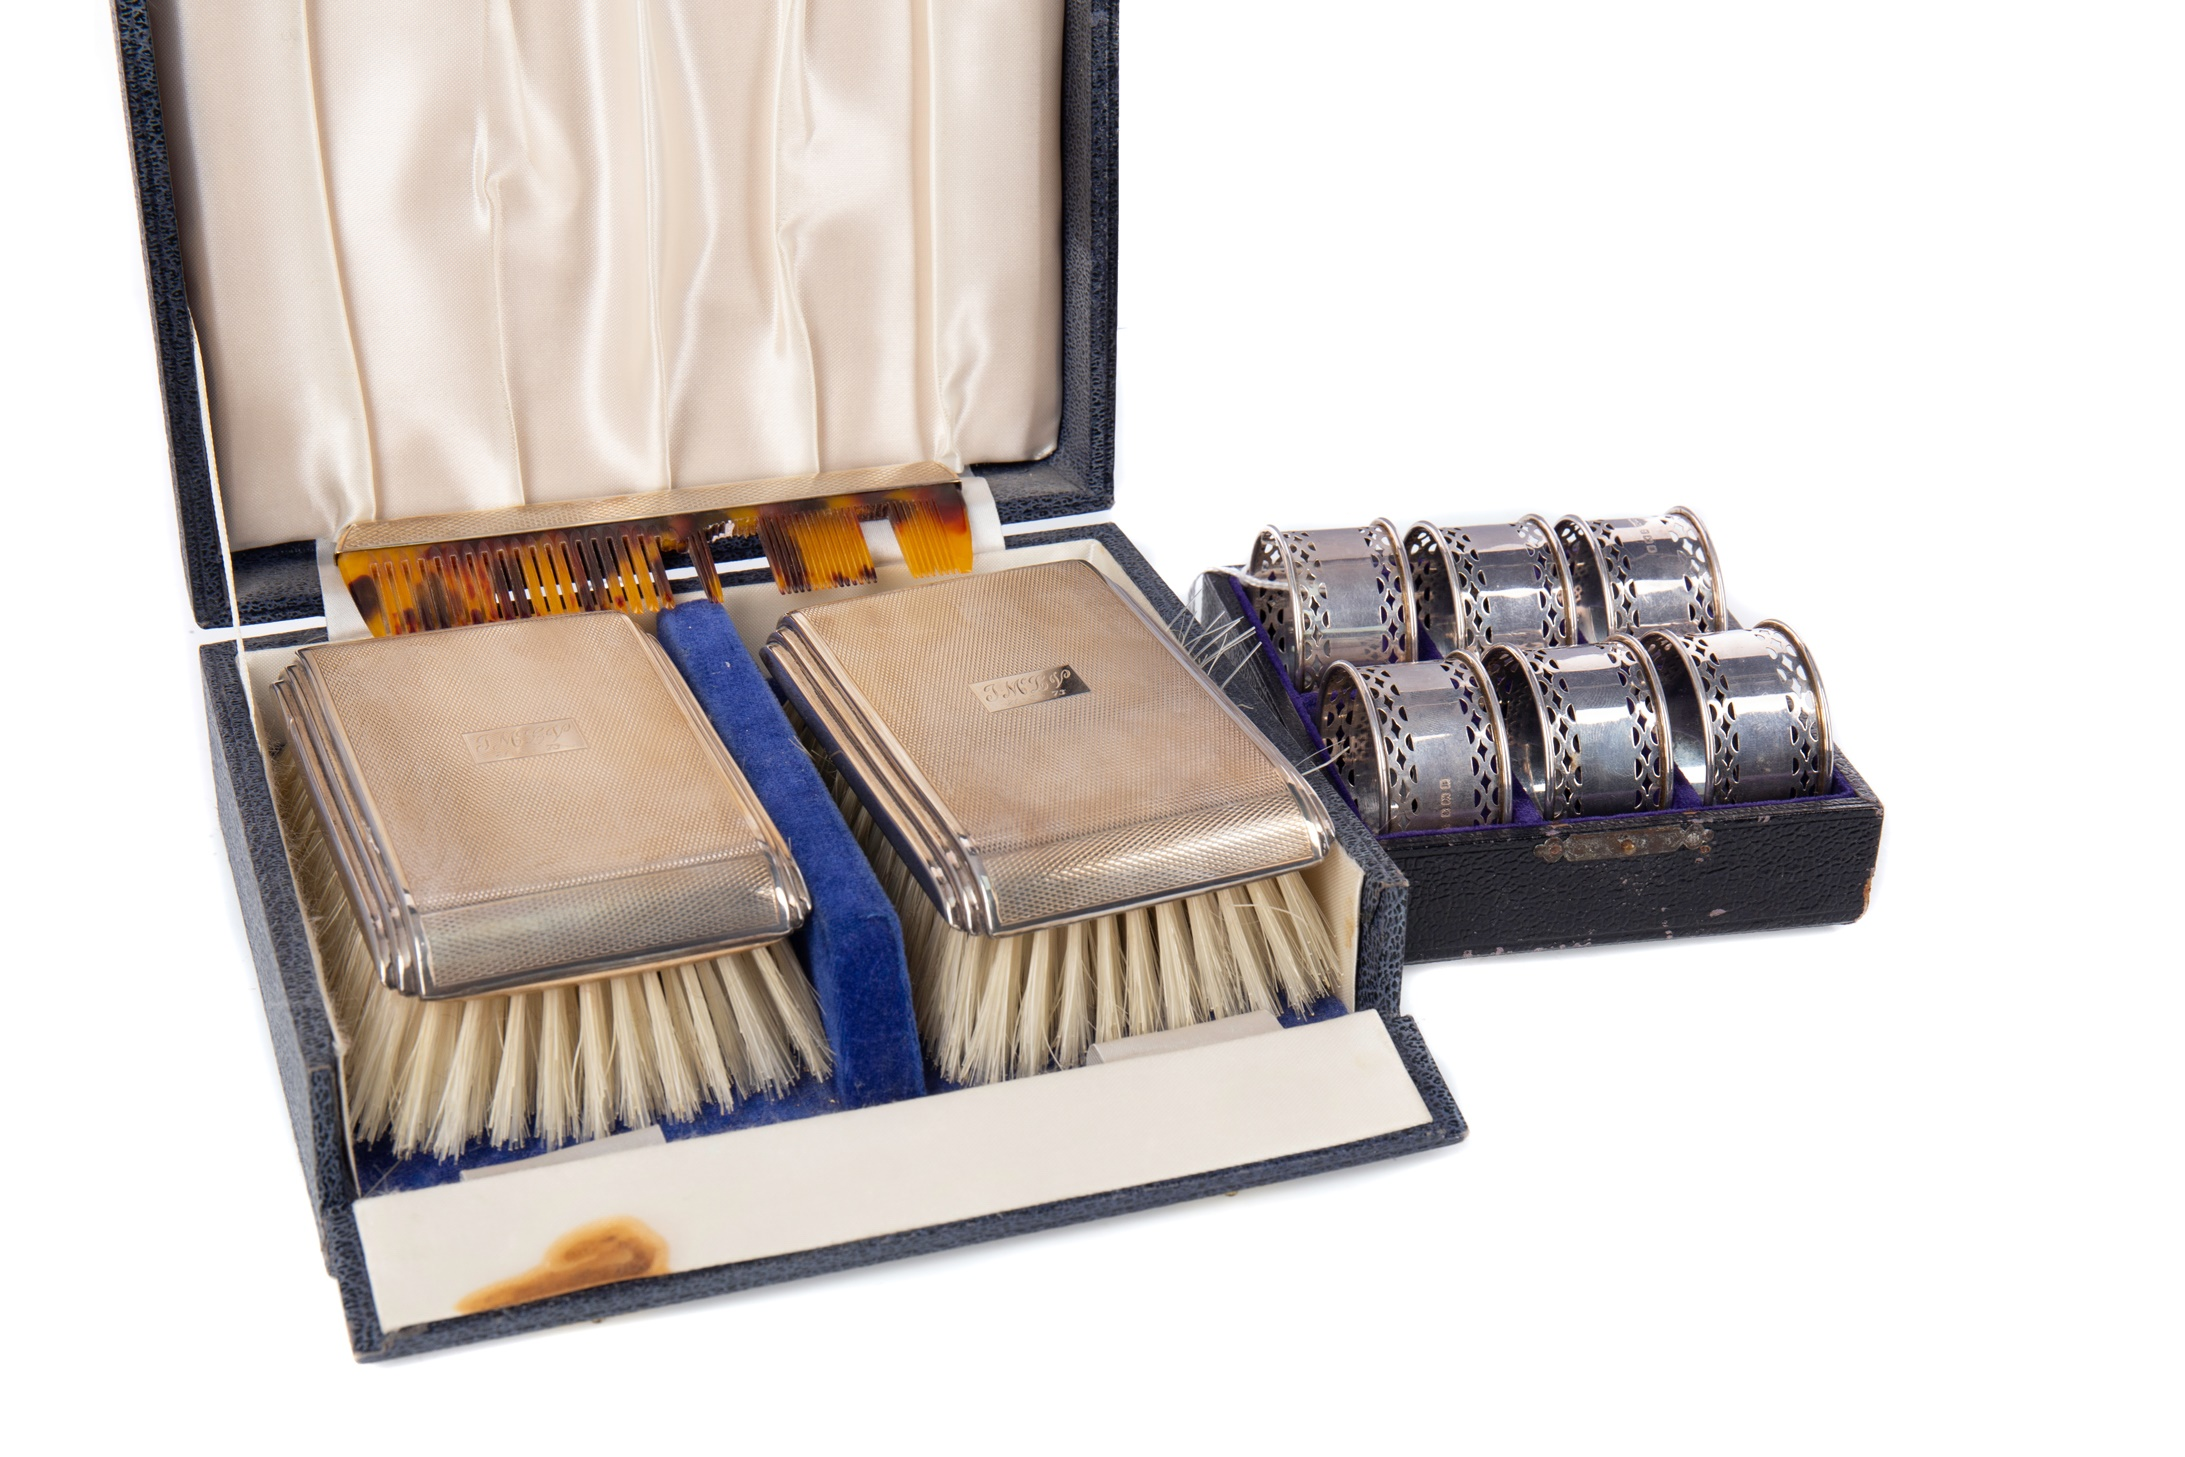 AN ELIZABETH II SILVER BACKED BRUSH SET, ALONG WITH A SET OF NAPKIN RINGS AND TEASPOONS